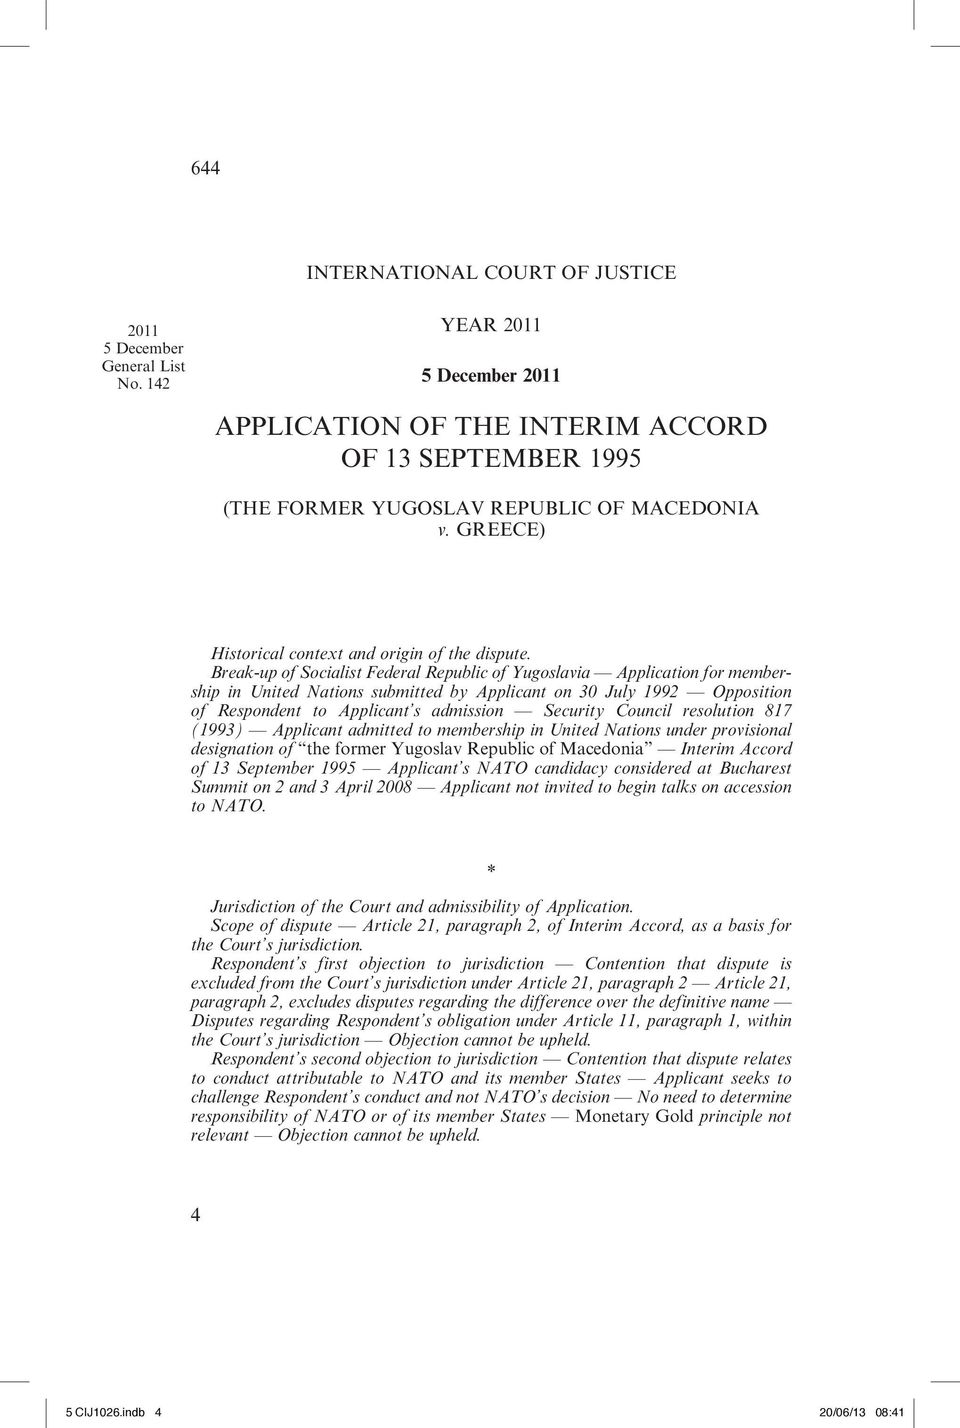 Break-up of Socialist Federal Republic of Yugoslavia Application for membership in United Nations submitted by Applicant on 30 July 1992 Opposition of Respondent to Applicant s admission Security